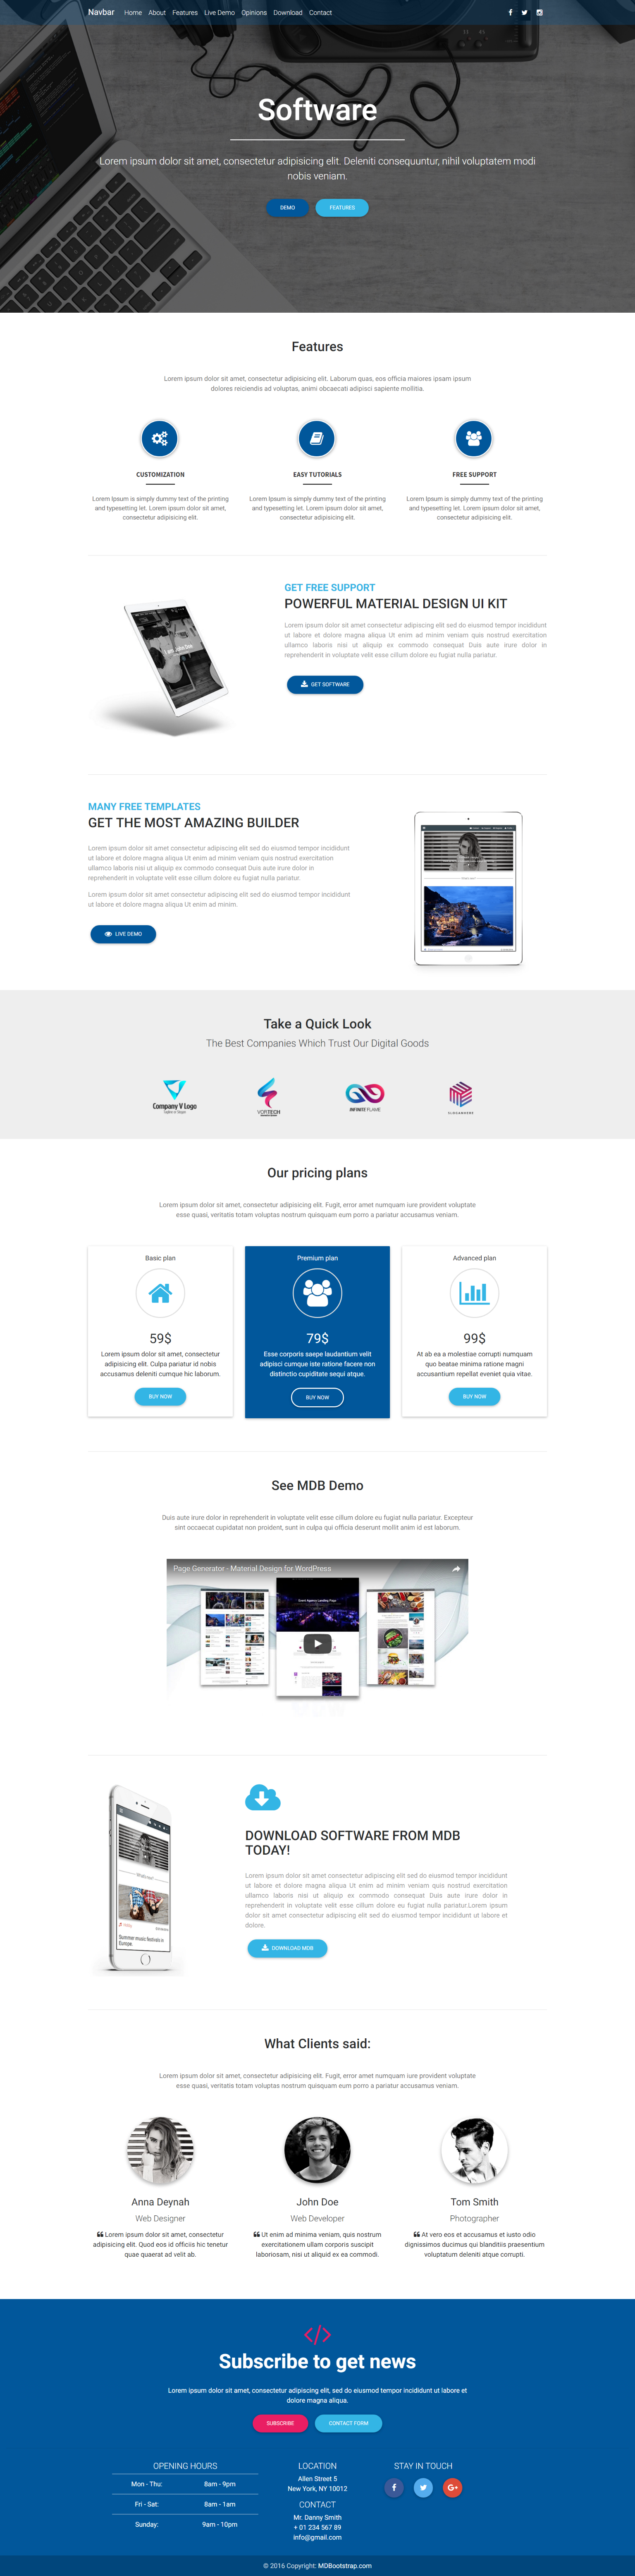 Fully responsive Software Landing Page Template, created with ...